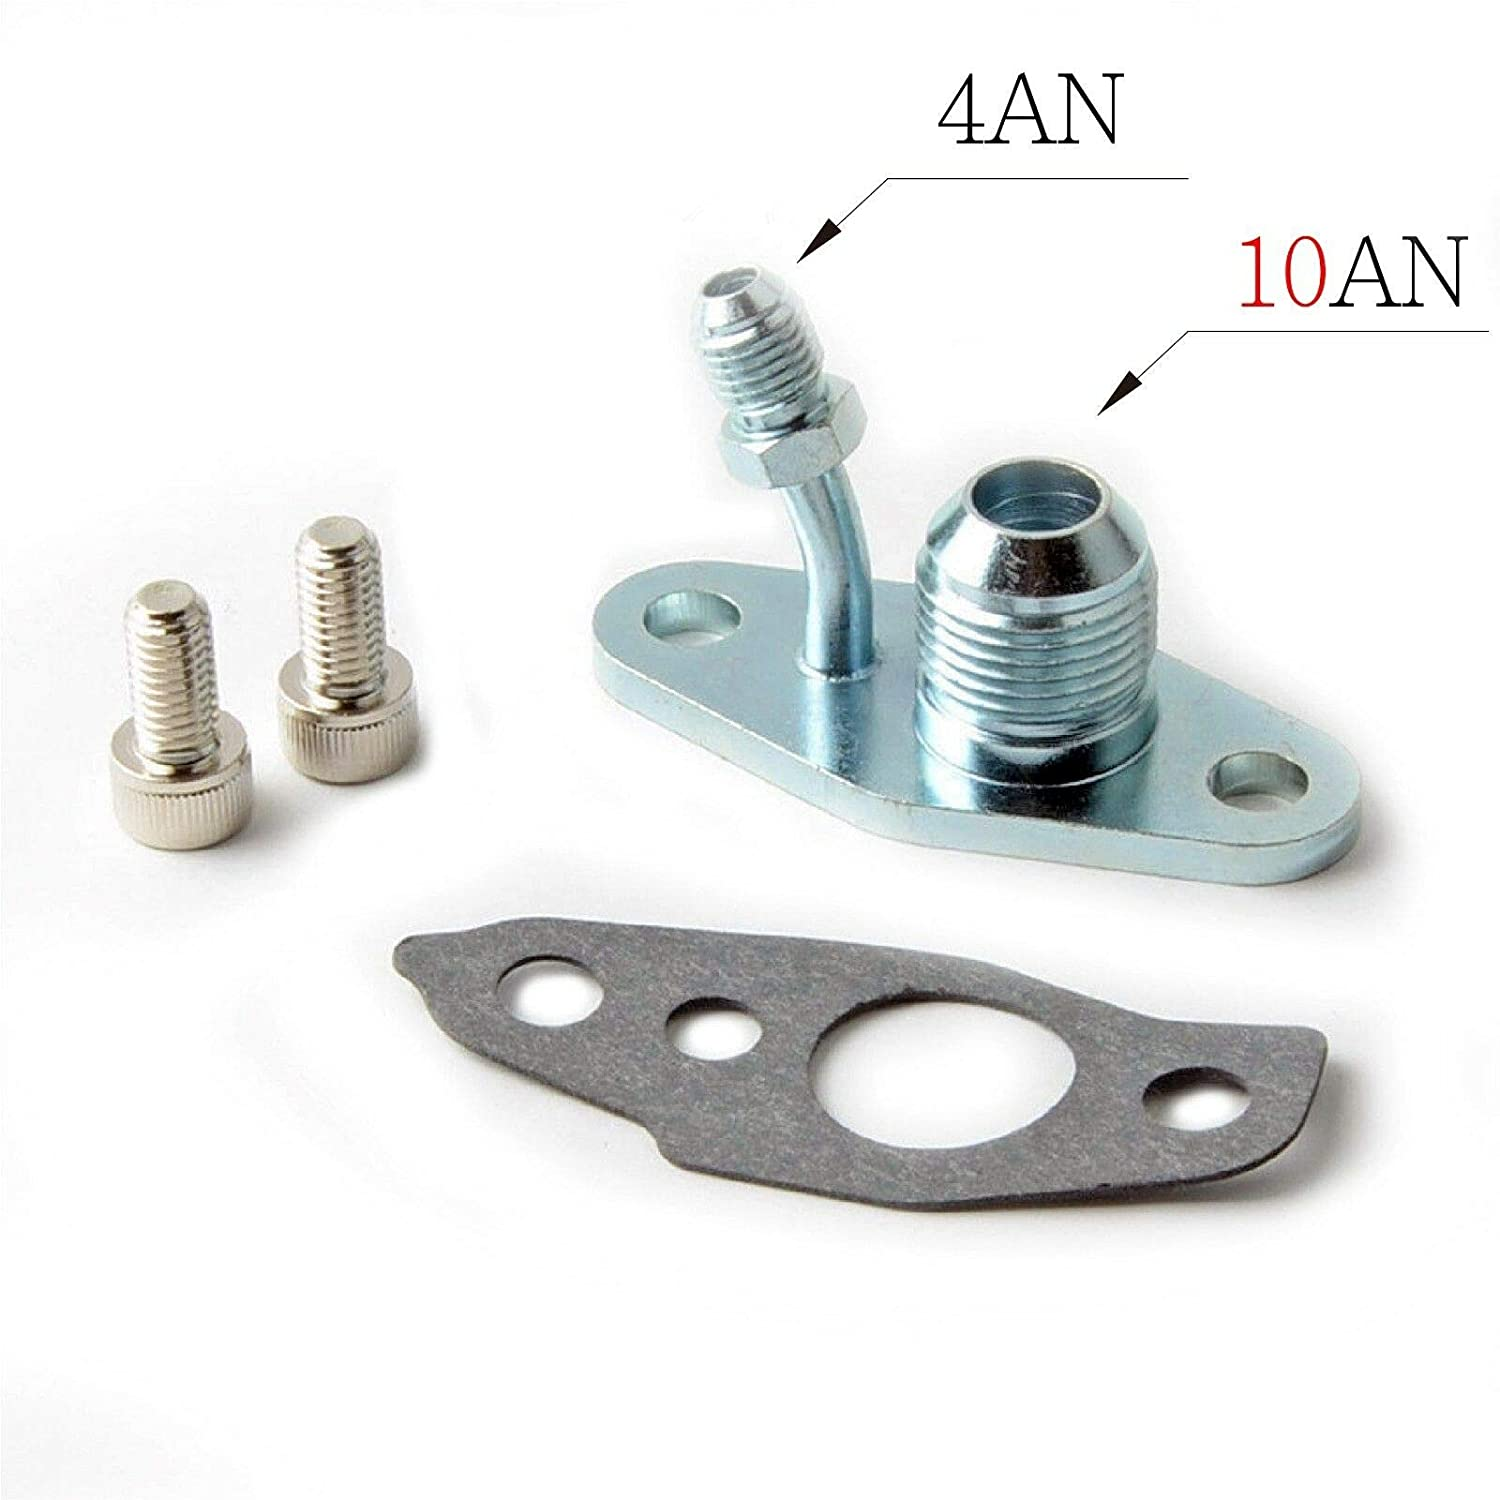 Smartturbo Oil Feed 4AN /& Oil Drain 10AN Flange is compatible with TOYOTA CT9 CT12 CT20 CT26 Turbos